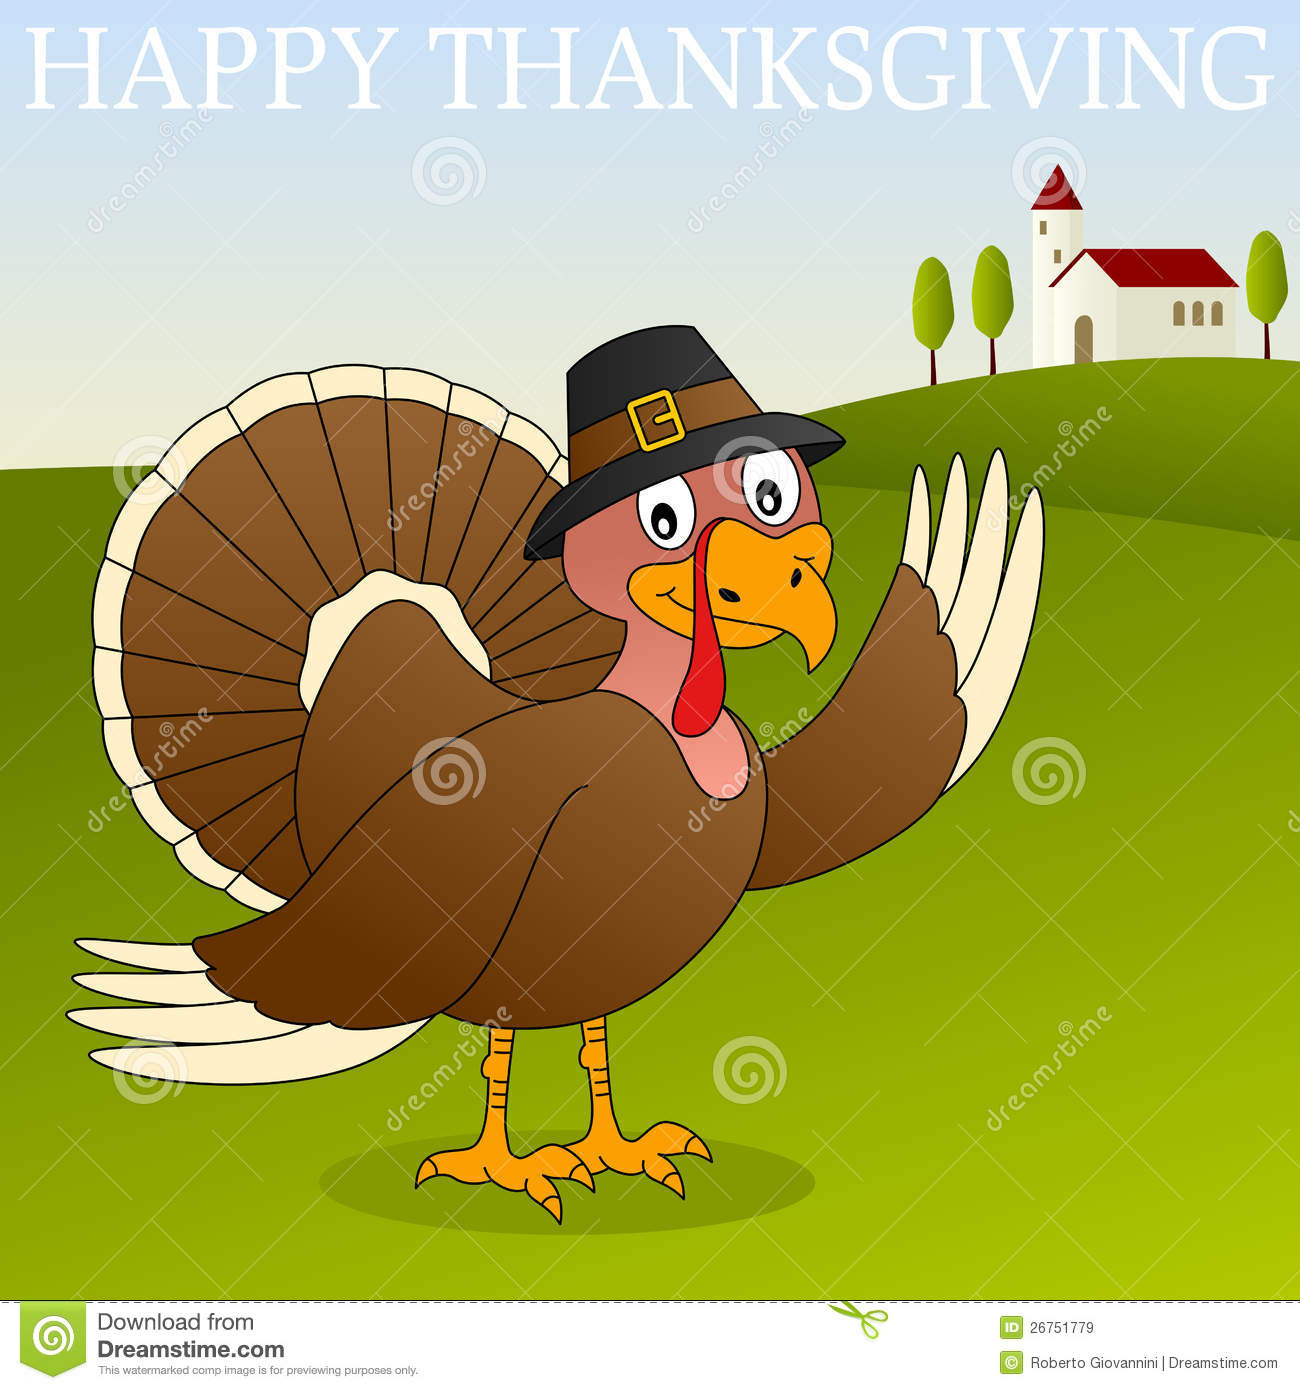 Happy thanksgiving turkey royalty free stock images image 26751779